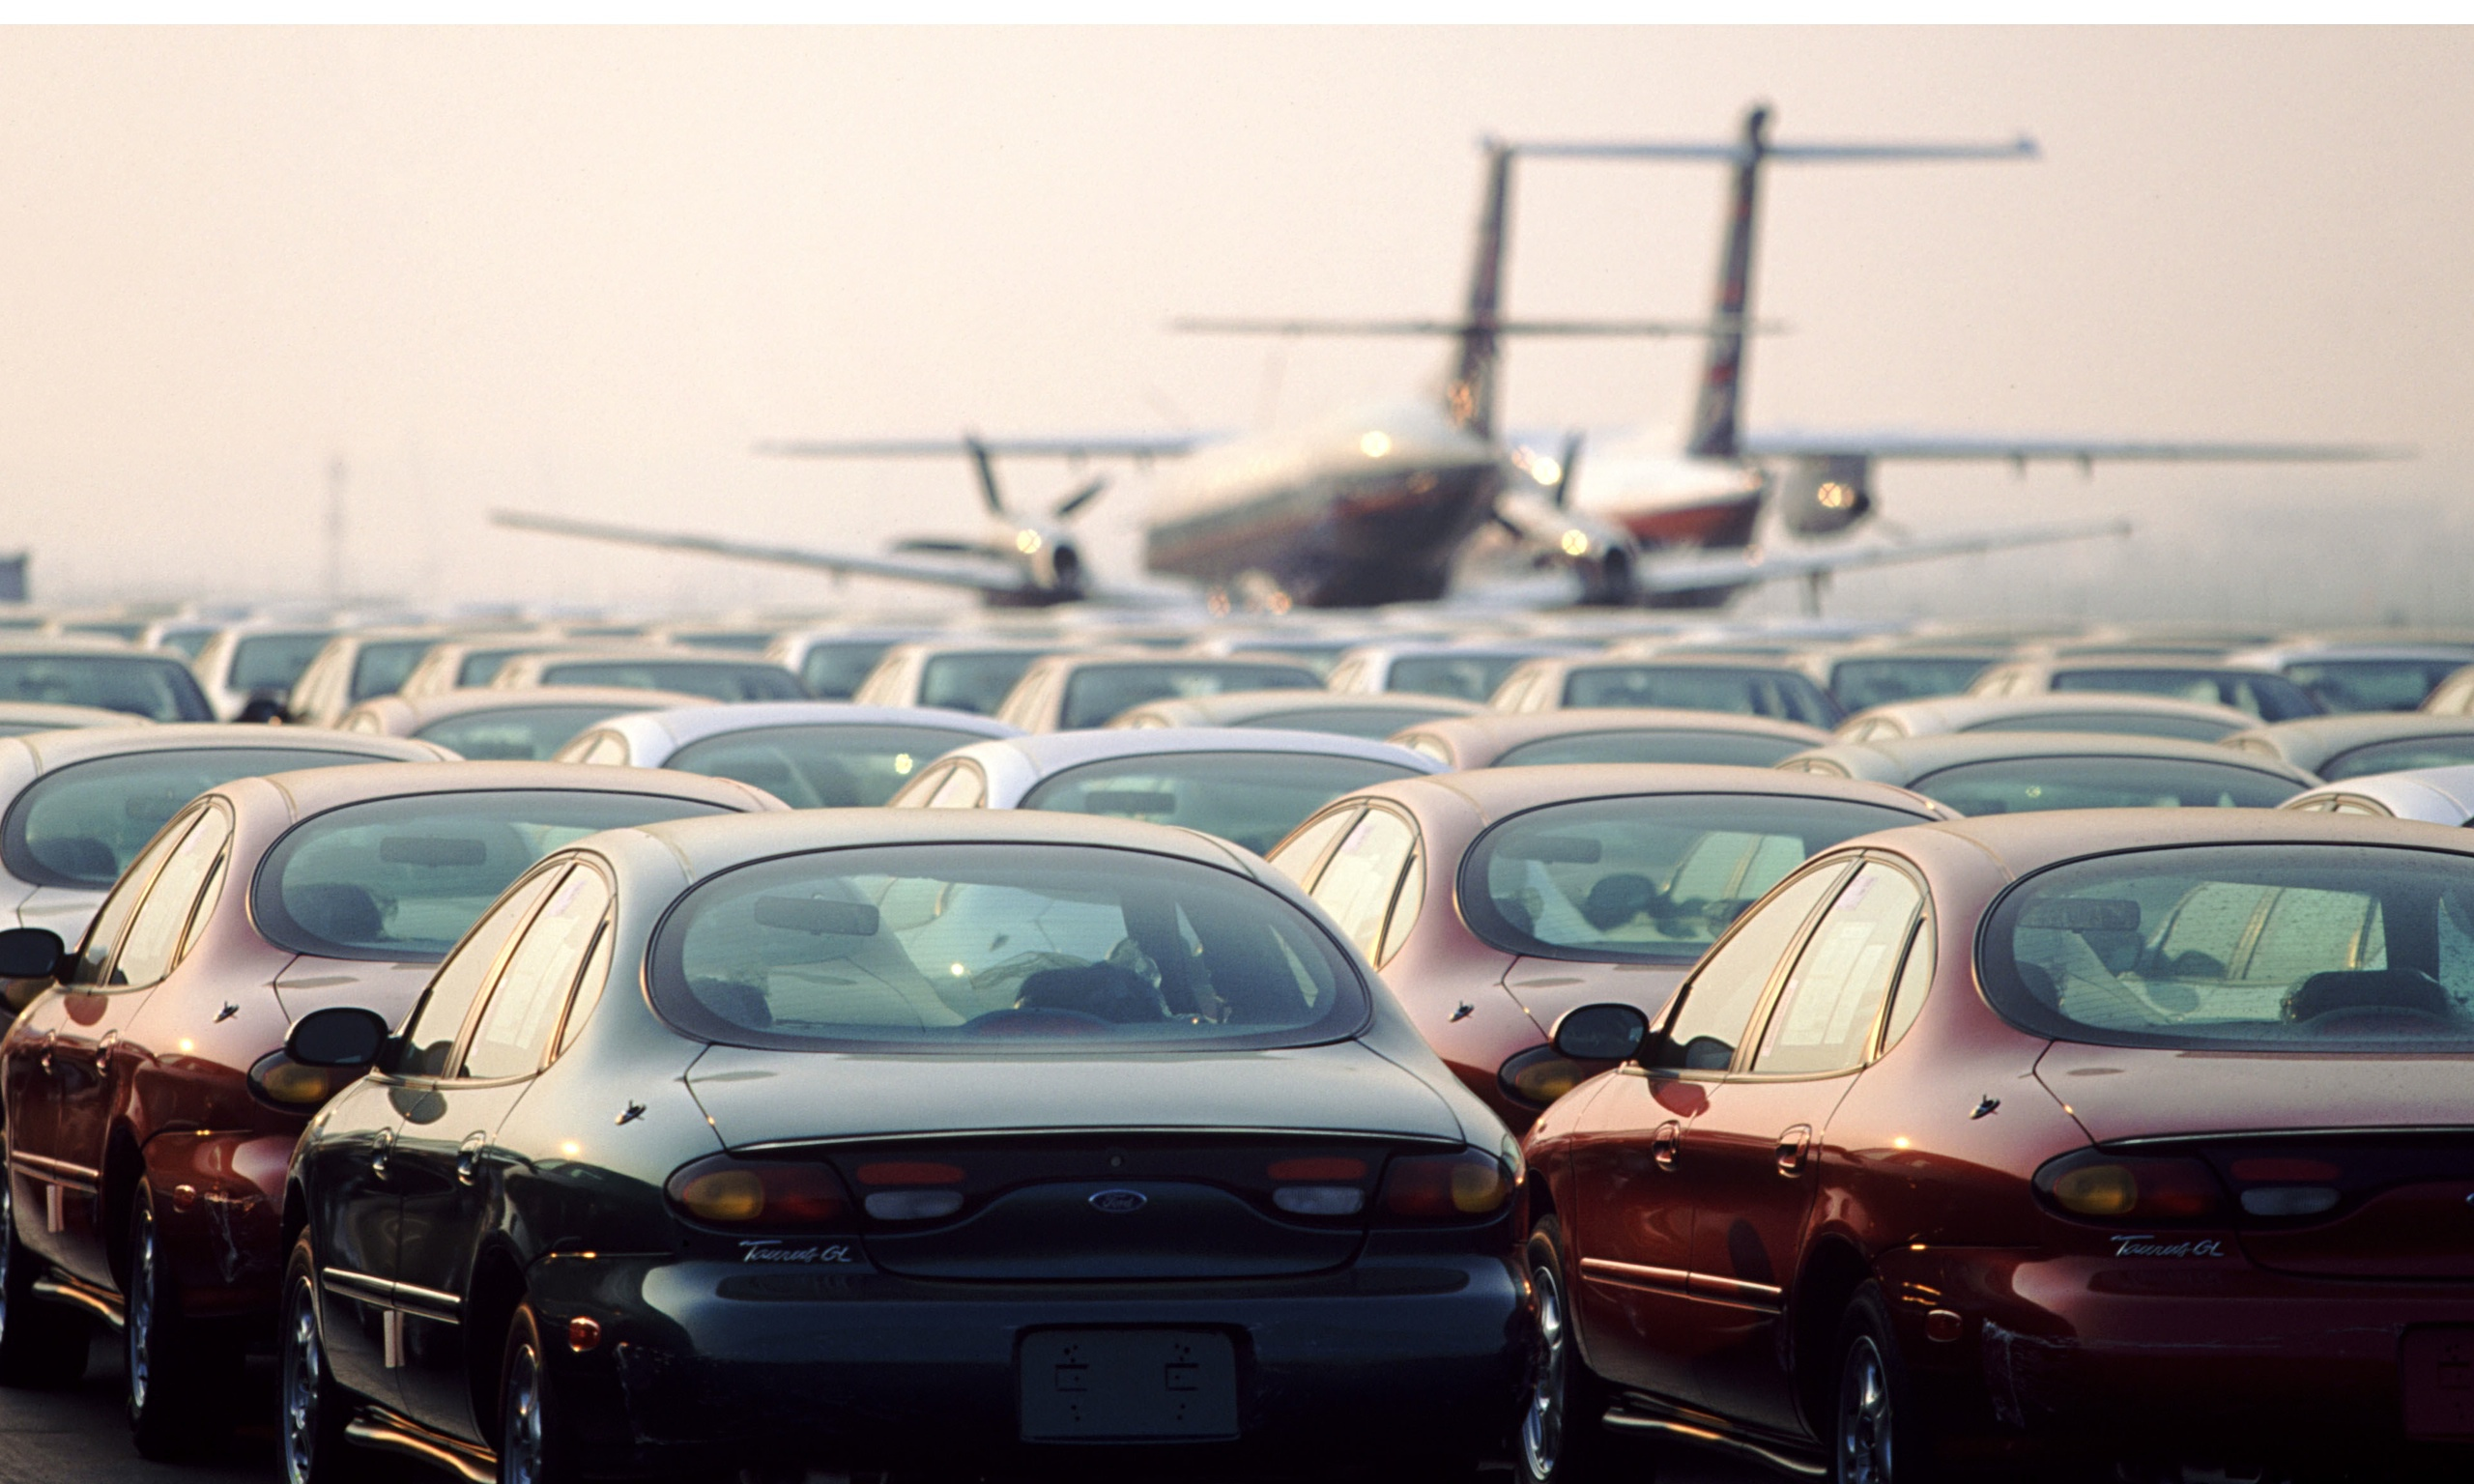 meet and greet parking at heathrow t3